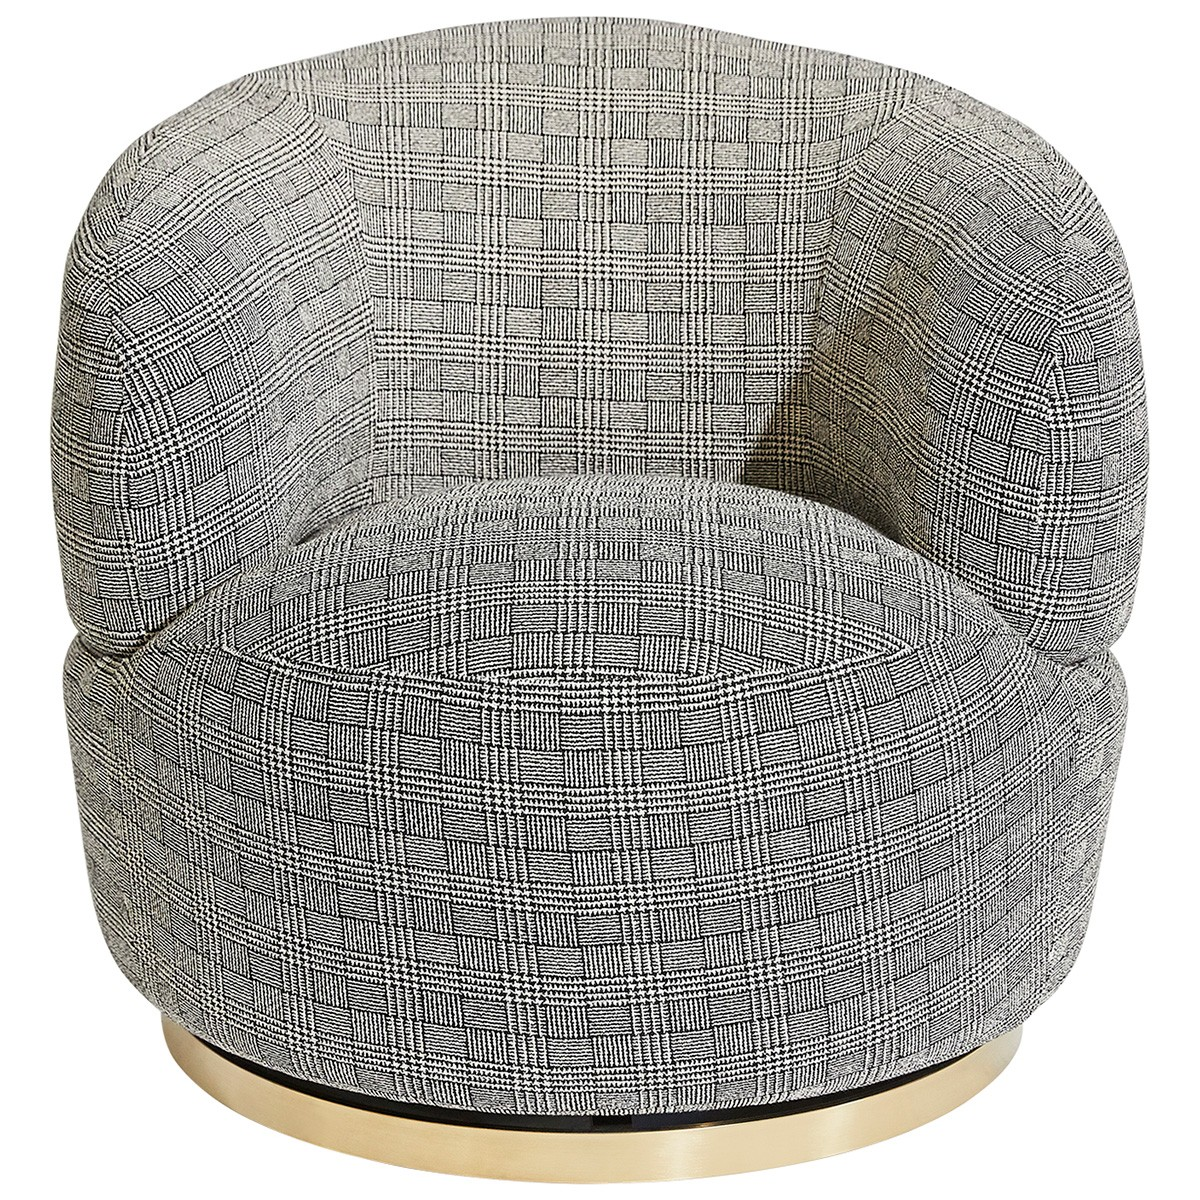 Tubby Fabric Swivel Armchair, Black Plaid